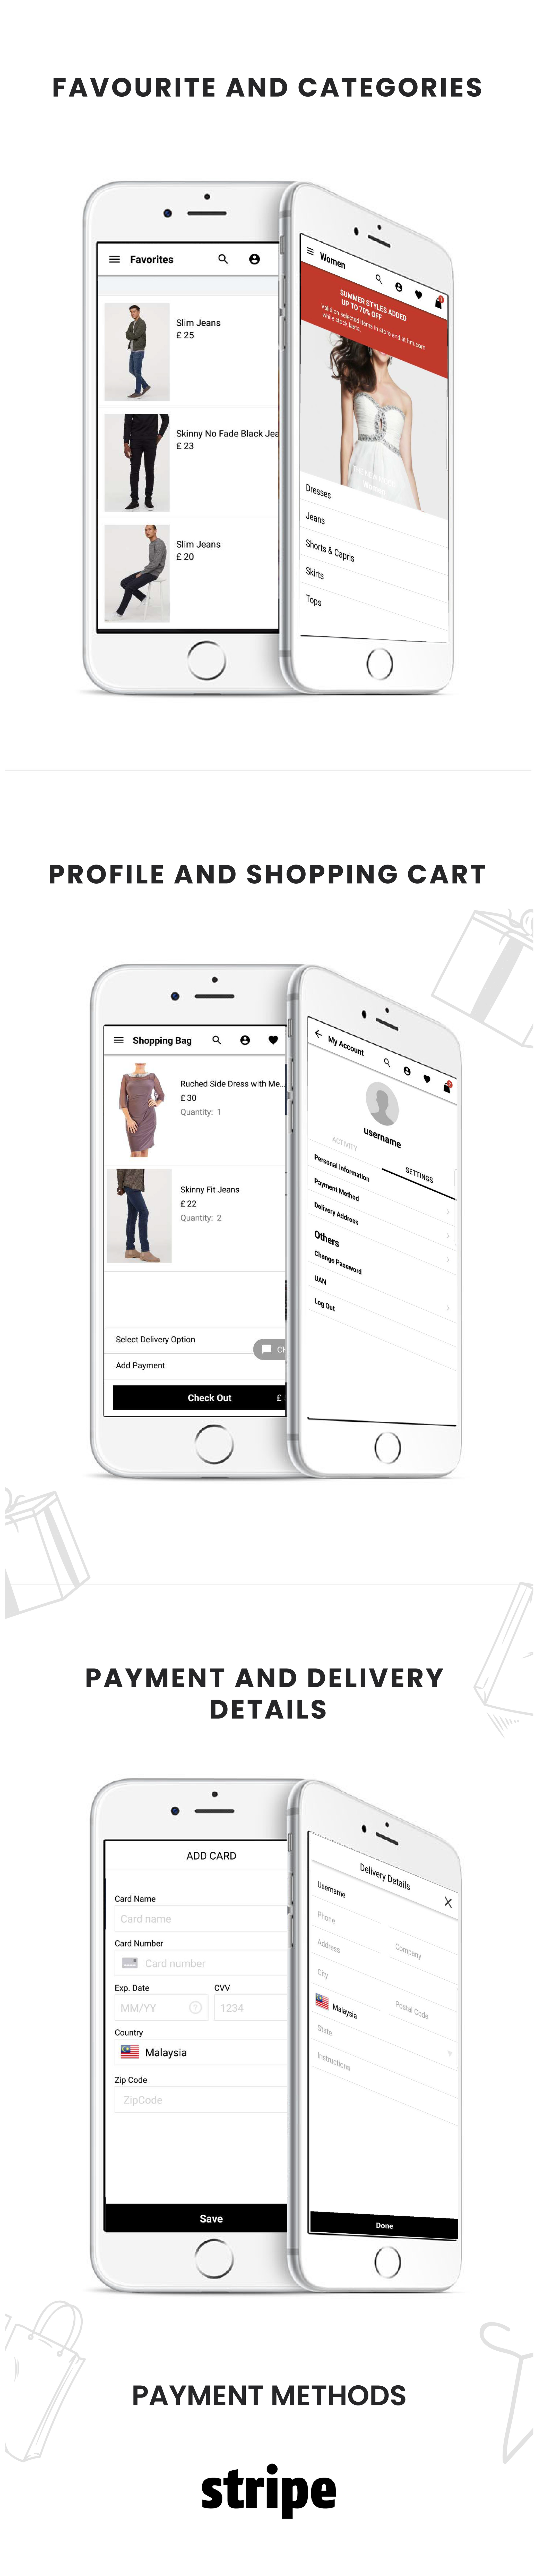 Bagy - Android native ecommerce app with wordpress backend - 4